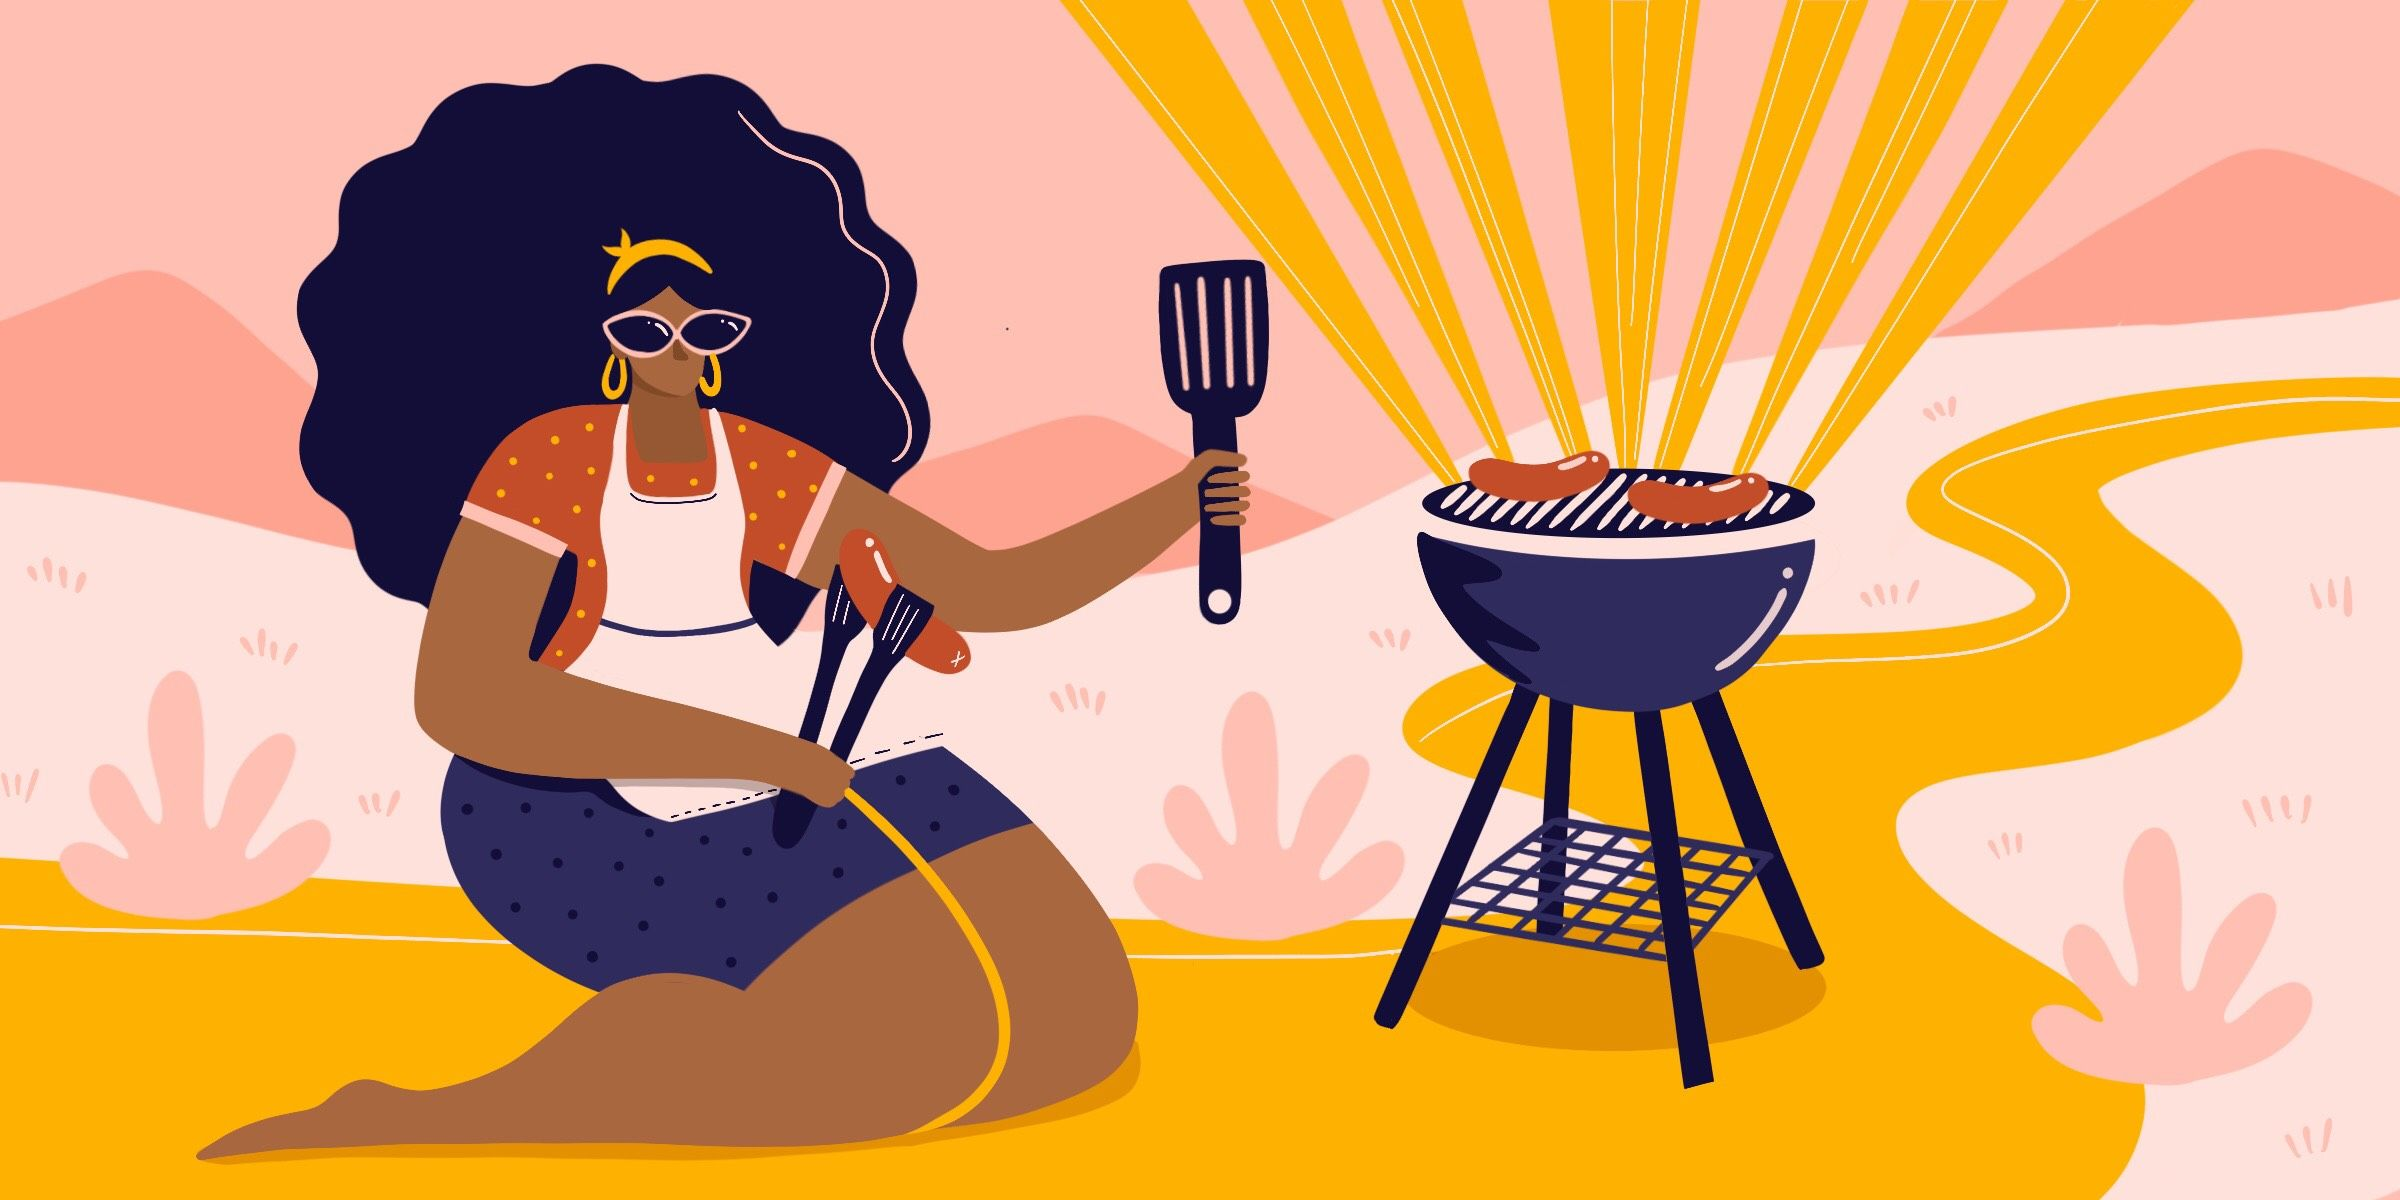 Son daughter cooking baking bbqing cliparts clipart How I Mastered the Grill, and Found Freedom in My Own Backyard clipart